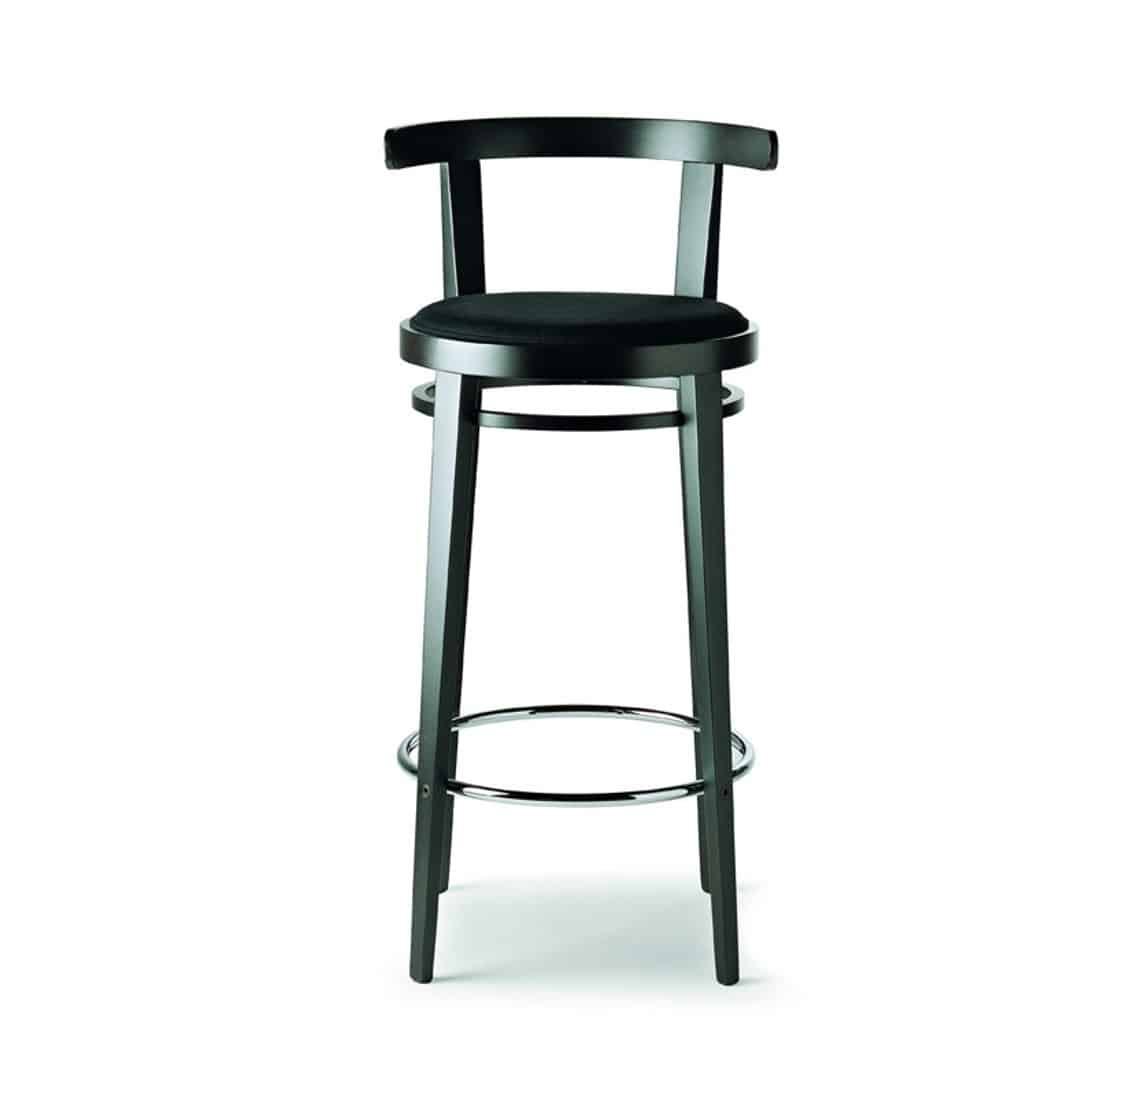 Brio Bar Stool DeFrae Contract Furniture